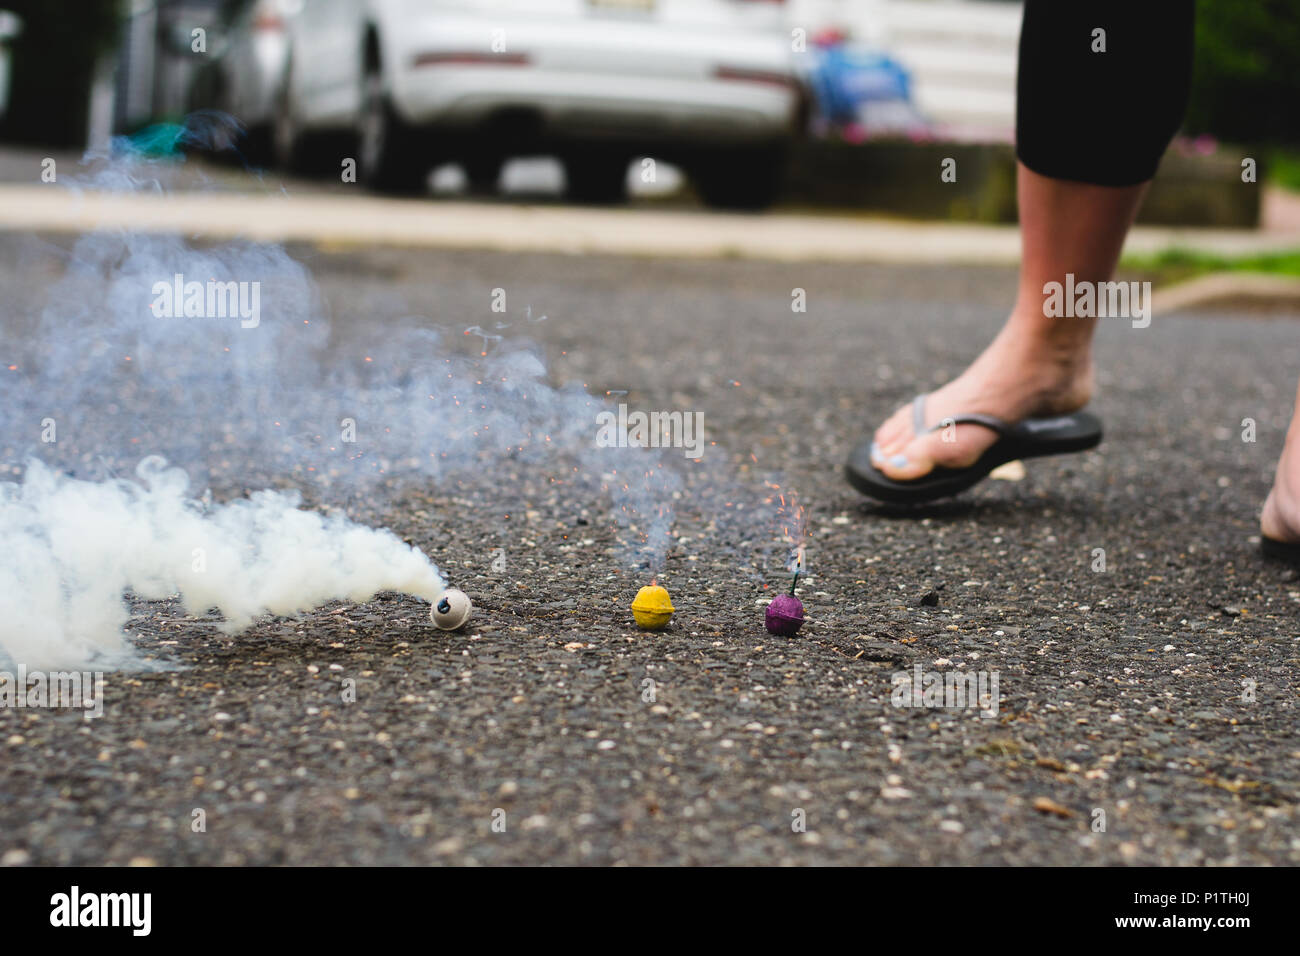 Three Smoke Bombs by Woman's Foot in Street - Stock Image